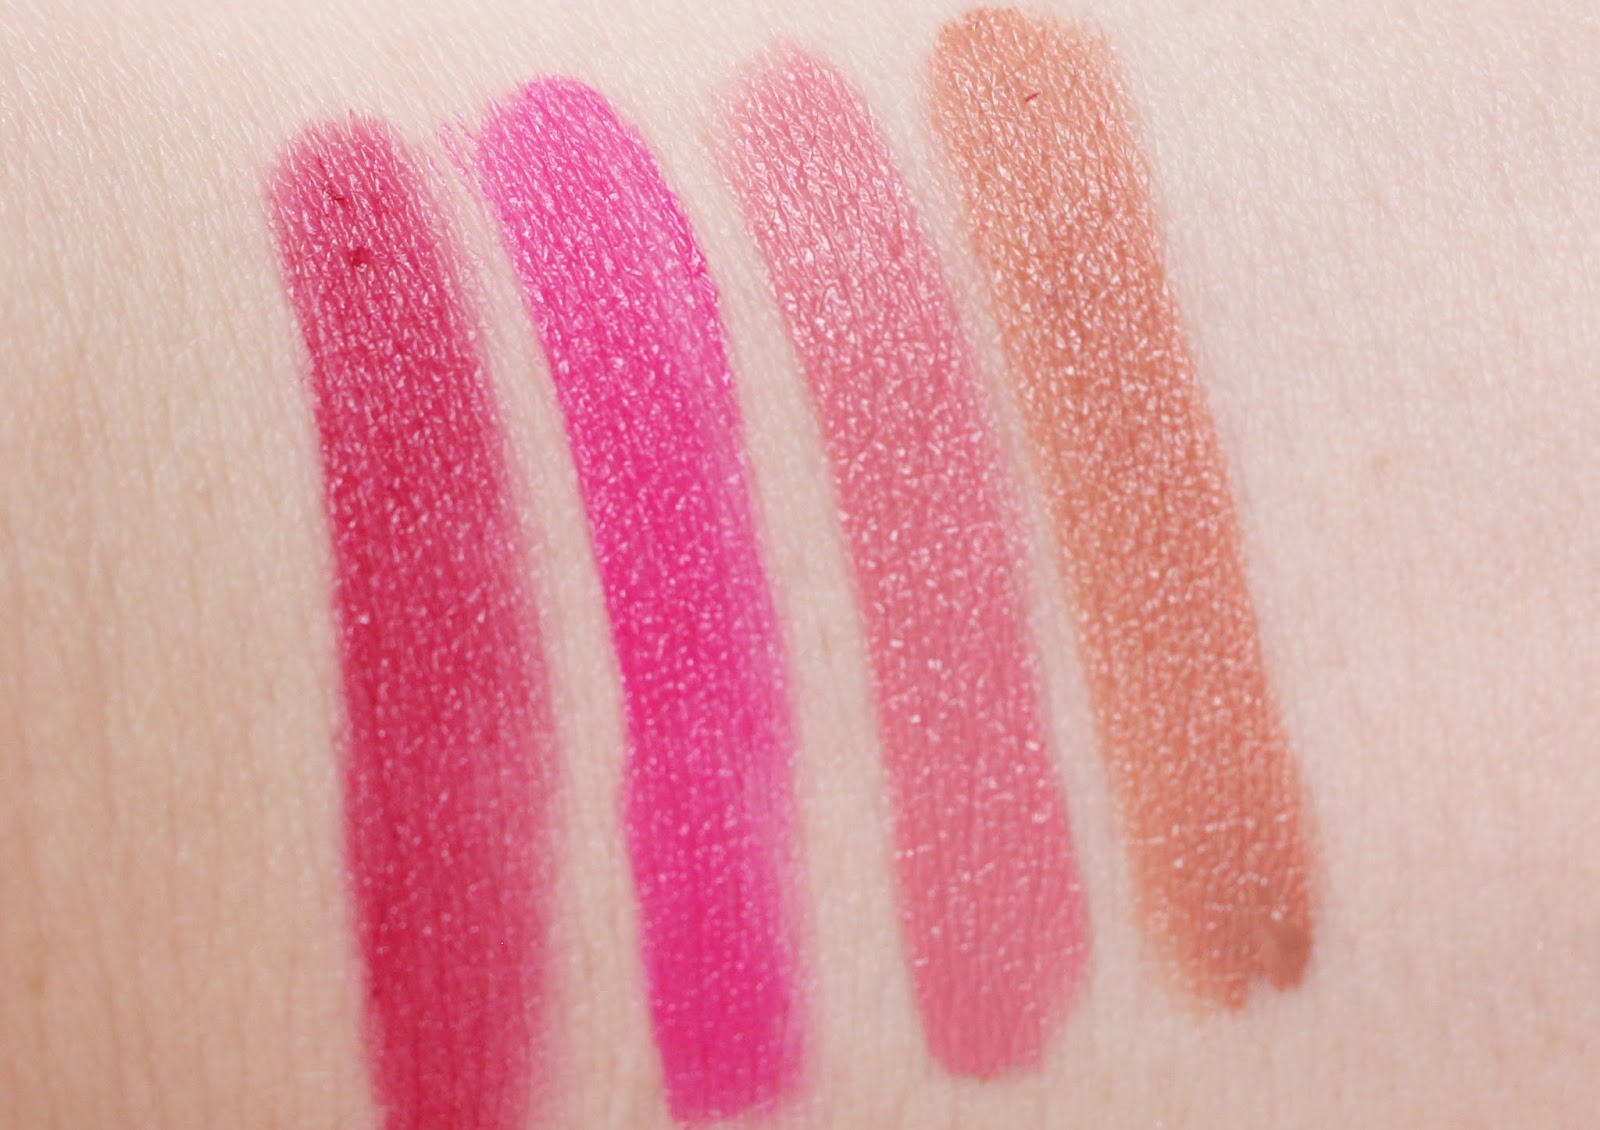 Too Faced Melted Kisses Blog Review Swatches